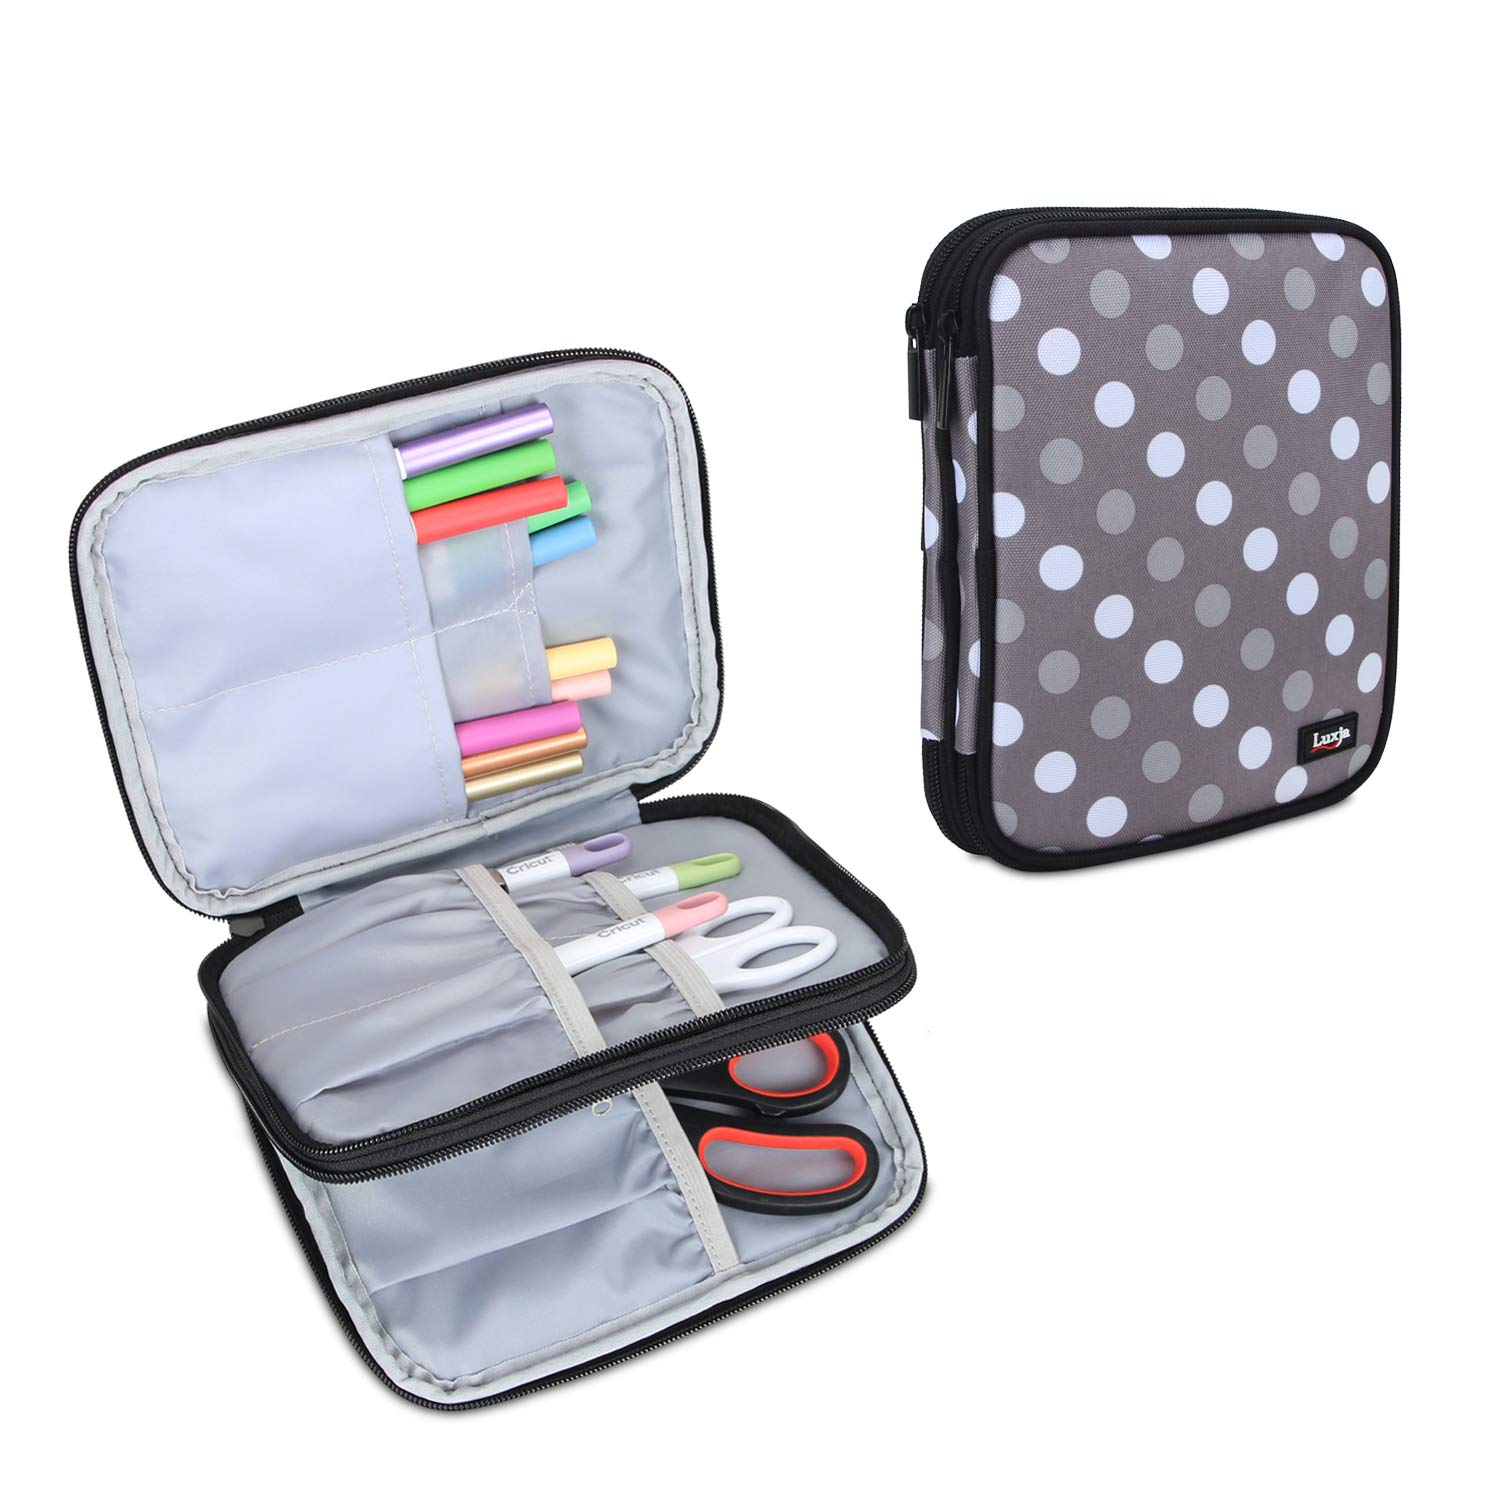 Green Bag Only Luxja Carrying Bag for Cricut Pen Set and Basic Tool Set Double-Layer Organizer for Cricut Accessories